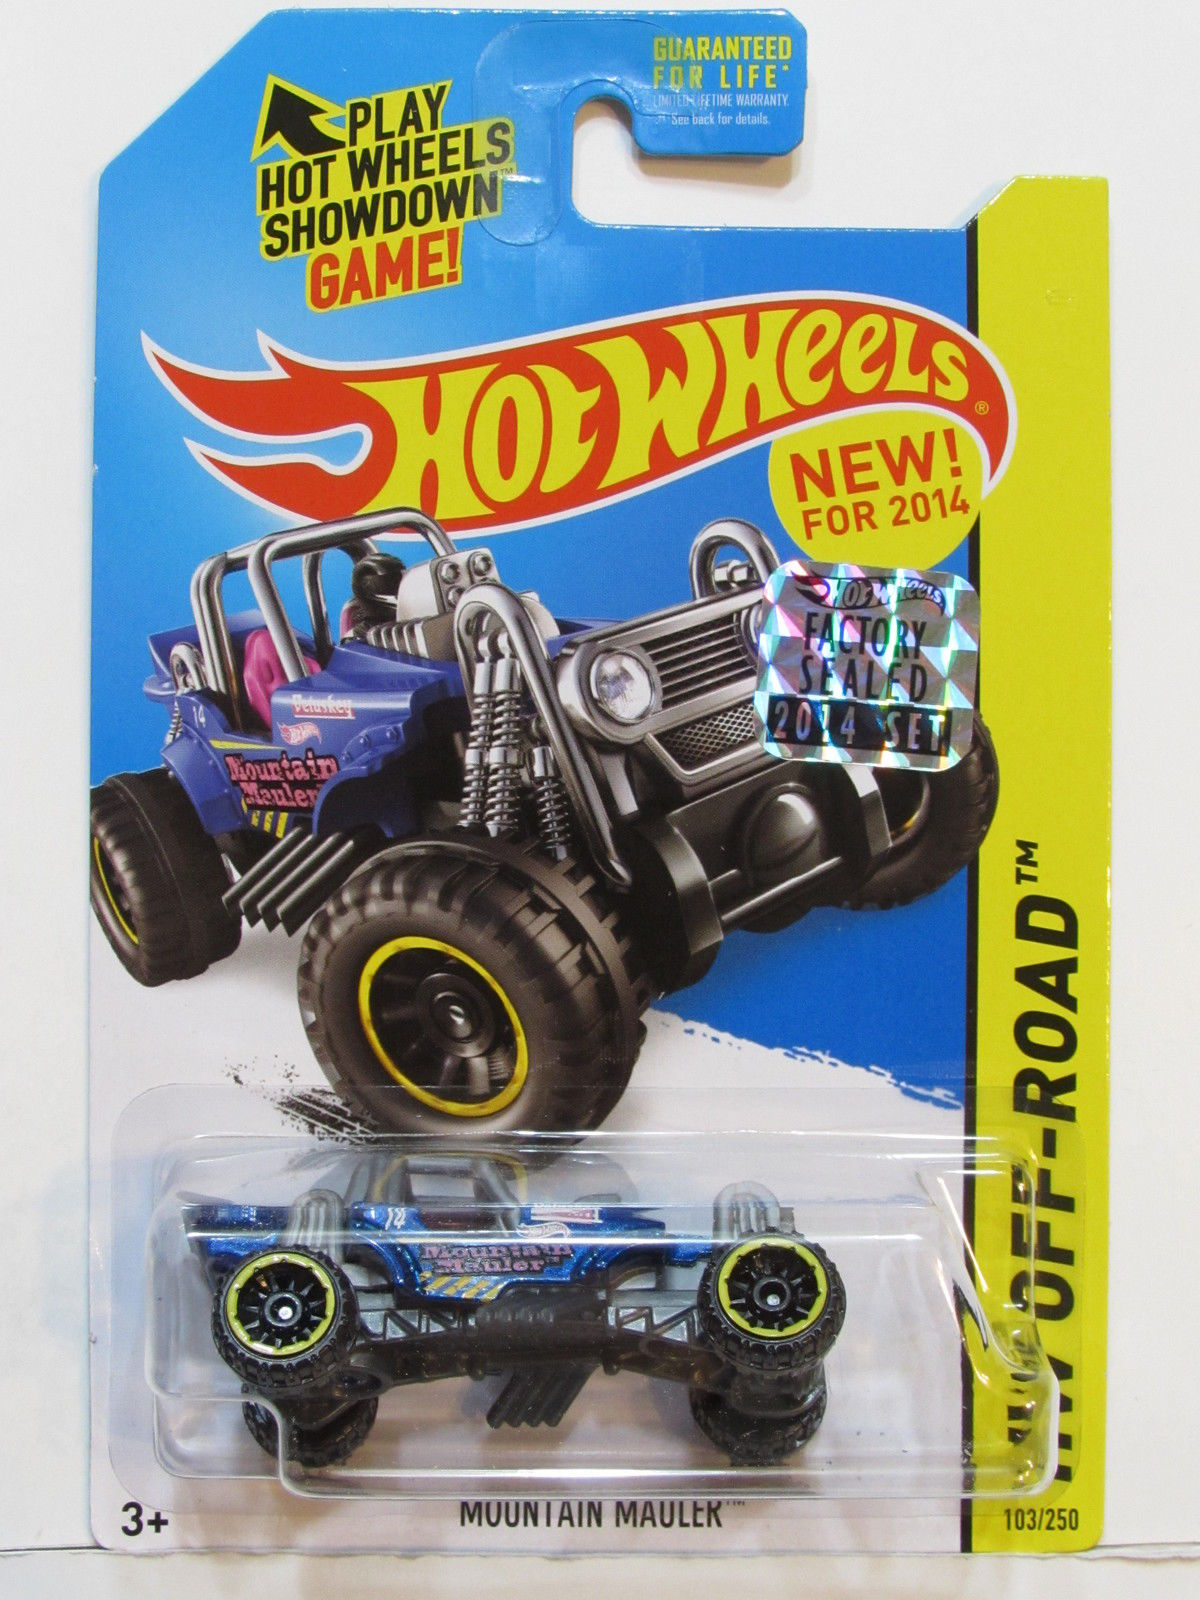 HOT WHEELS 2014 HW OFF ROAD MOUNTAIN MAULER FACTORY SEALED